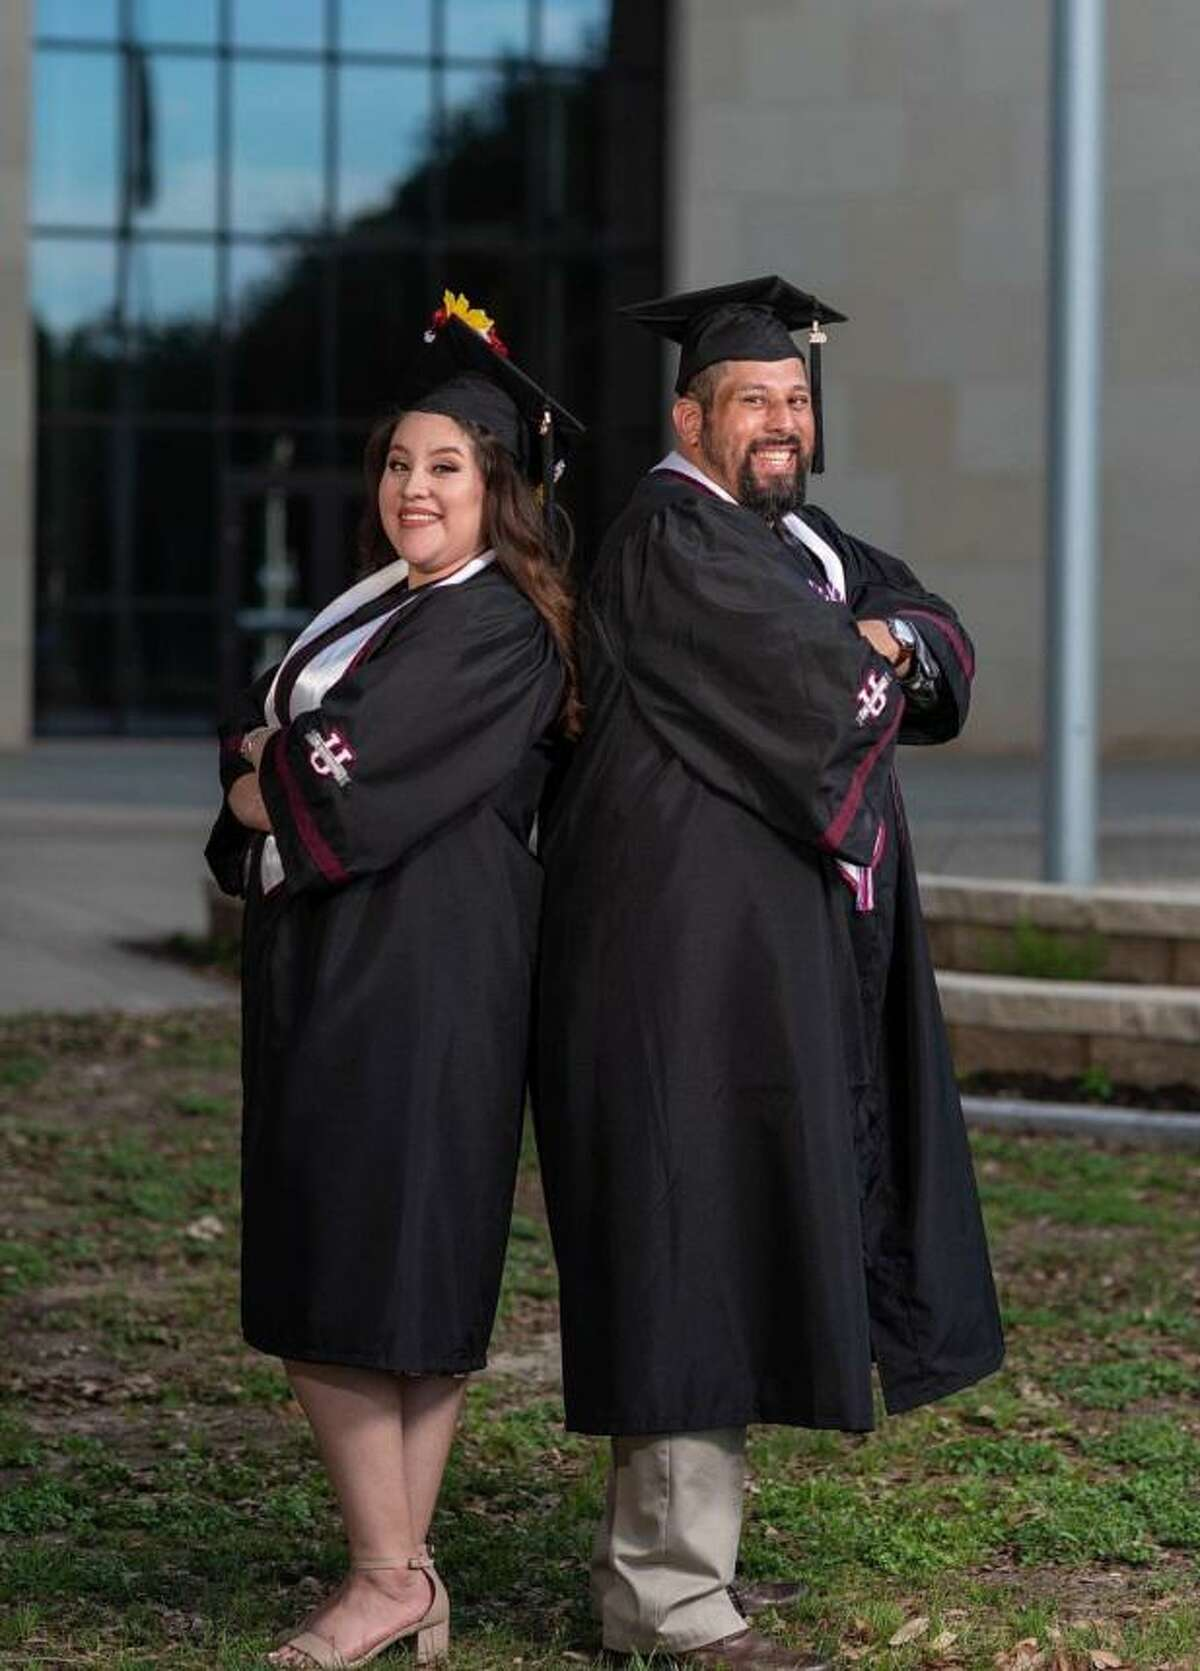 Amanda and Ricardo Quijano, a daughter and father, graduated from TAMIU together this year. Both were also history majors.